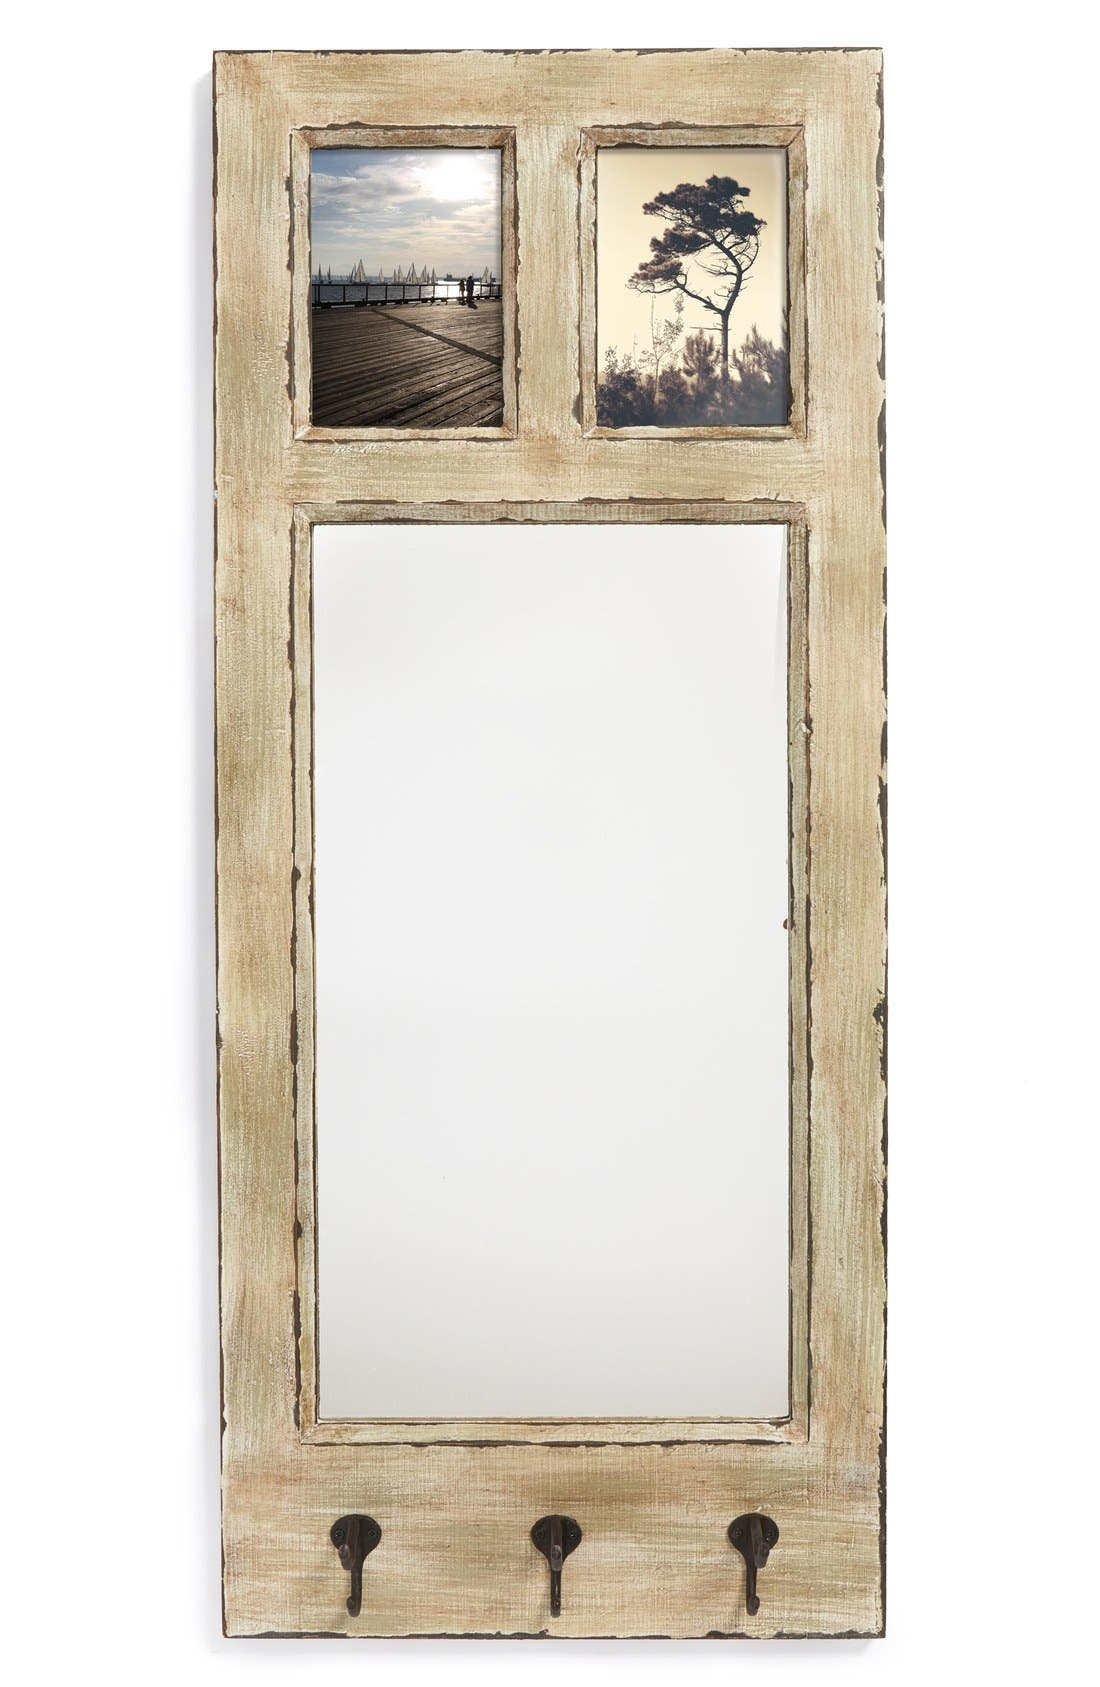 Main Image - Creative Co-Op Wooden Wall Mirror, Picture Frame & Hooks